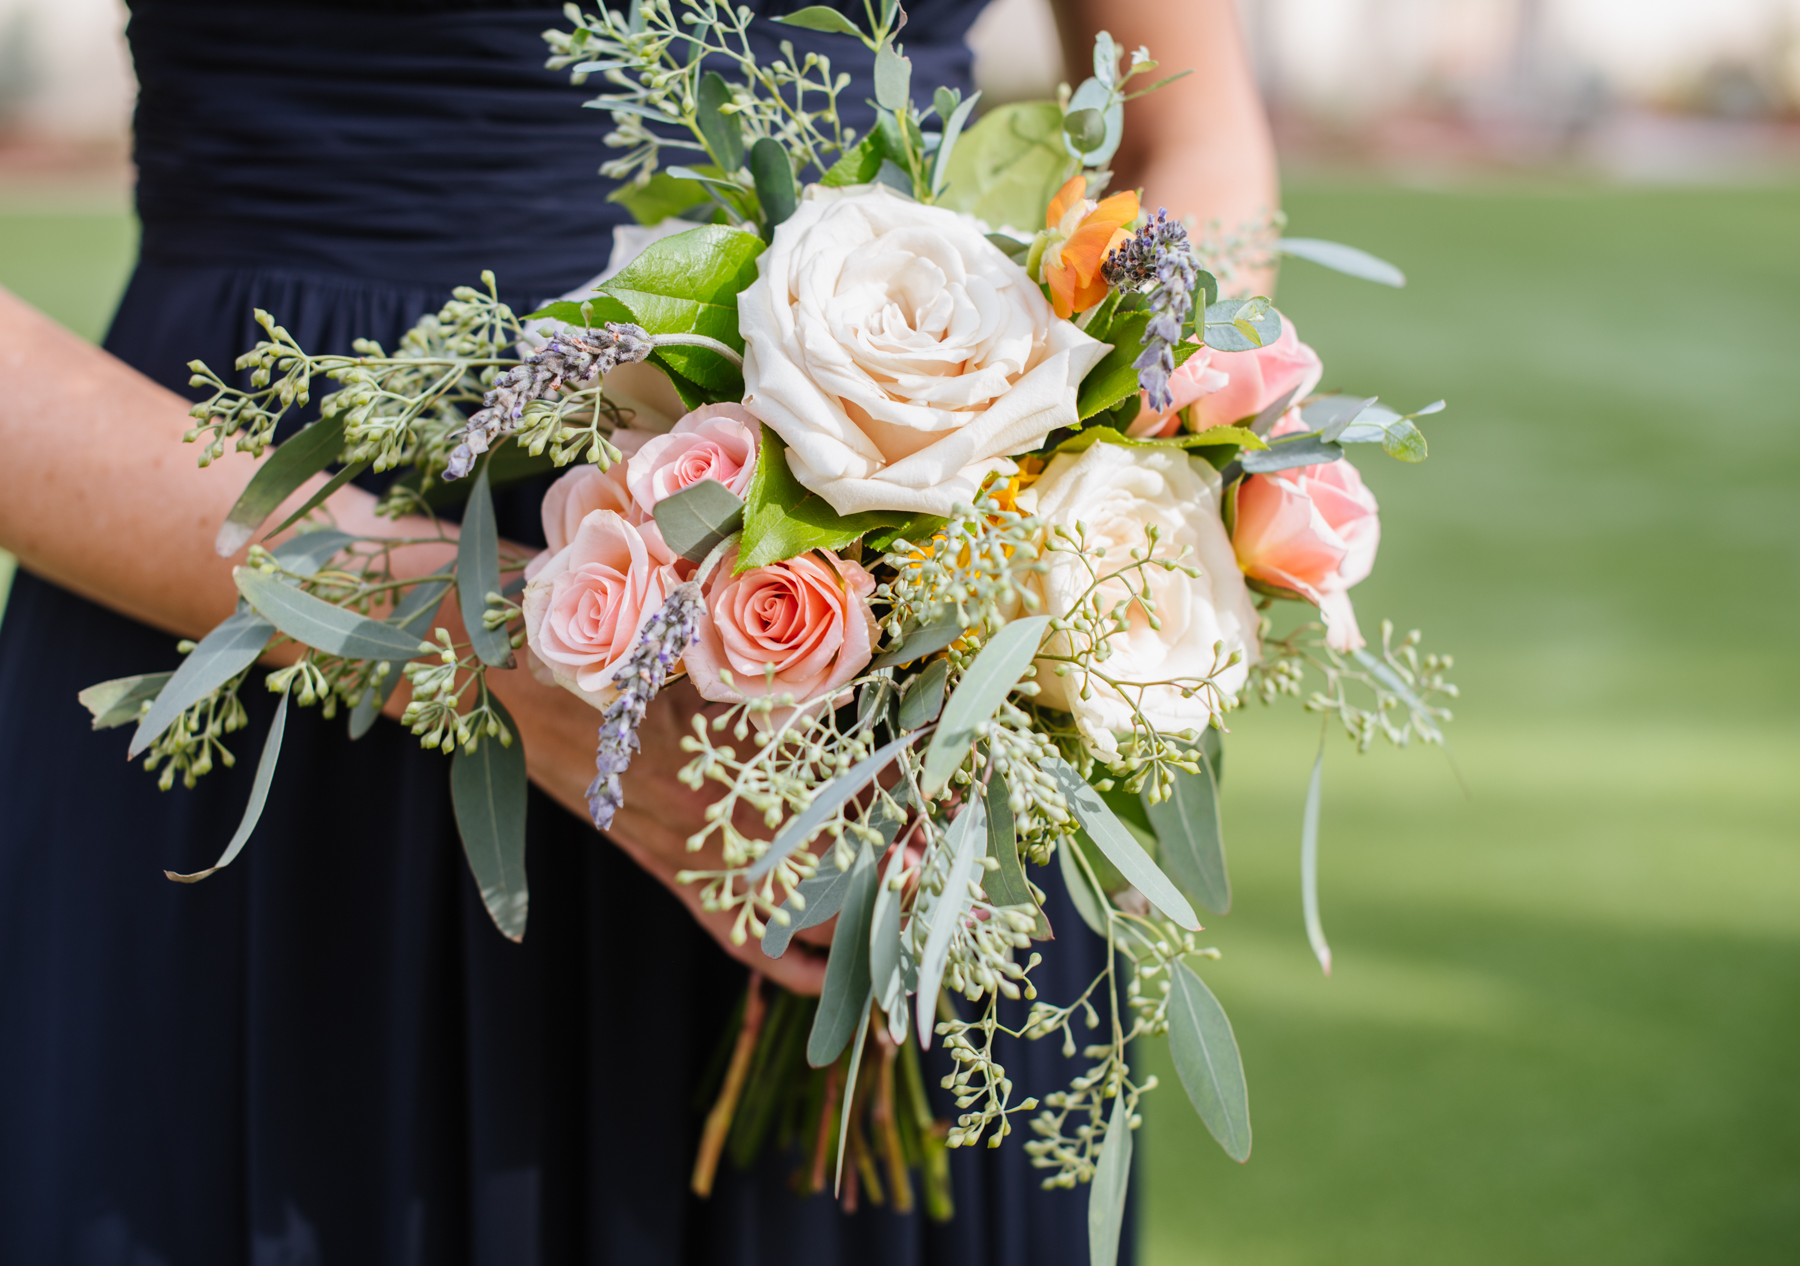 Secret Garden Event Center Wedding - Meredith Amadee Photography-60.jpg